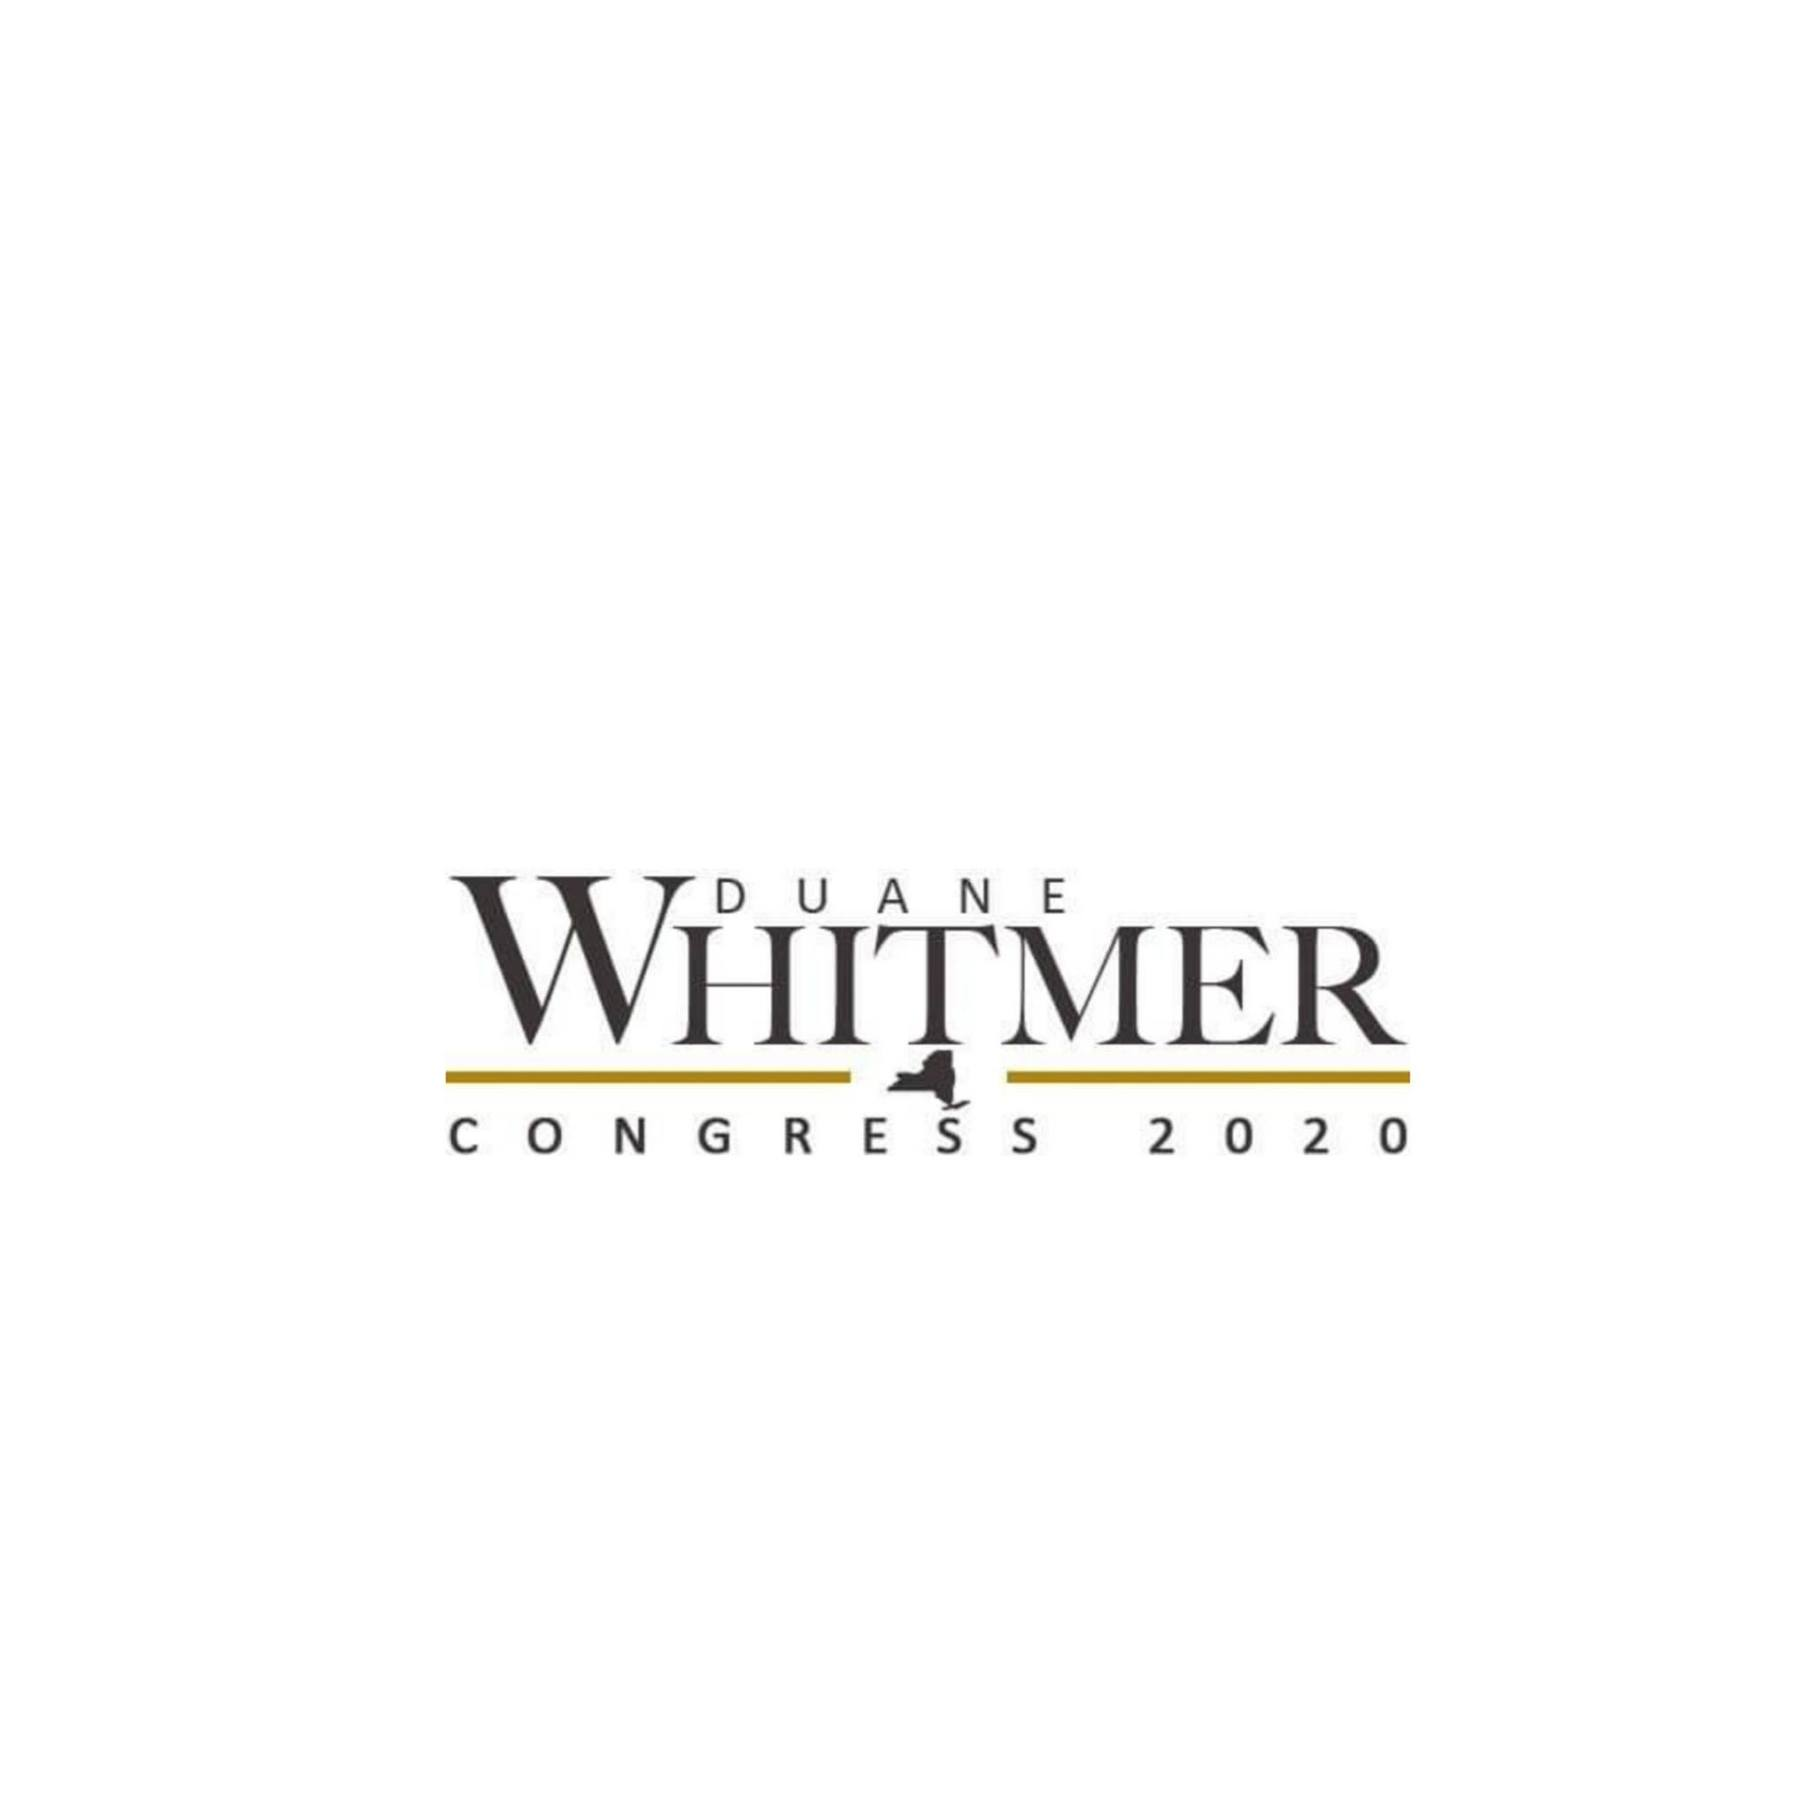 DJW 4 Congress: Whitmer